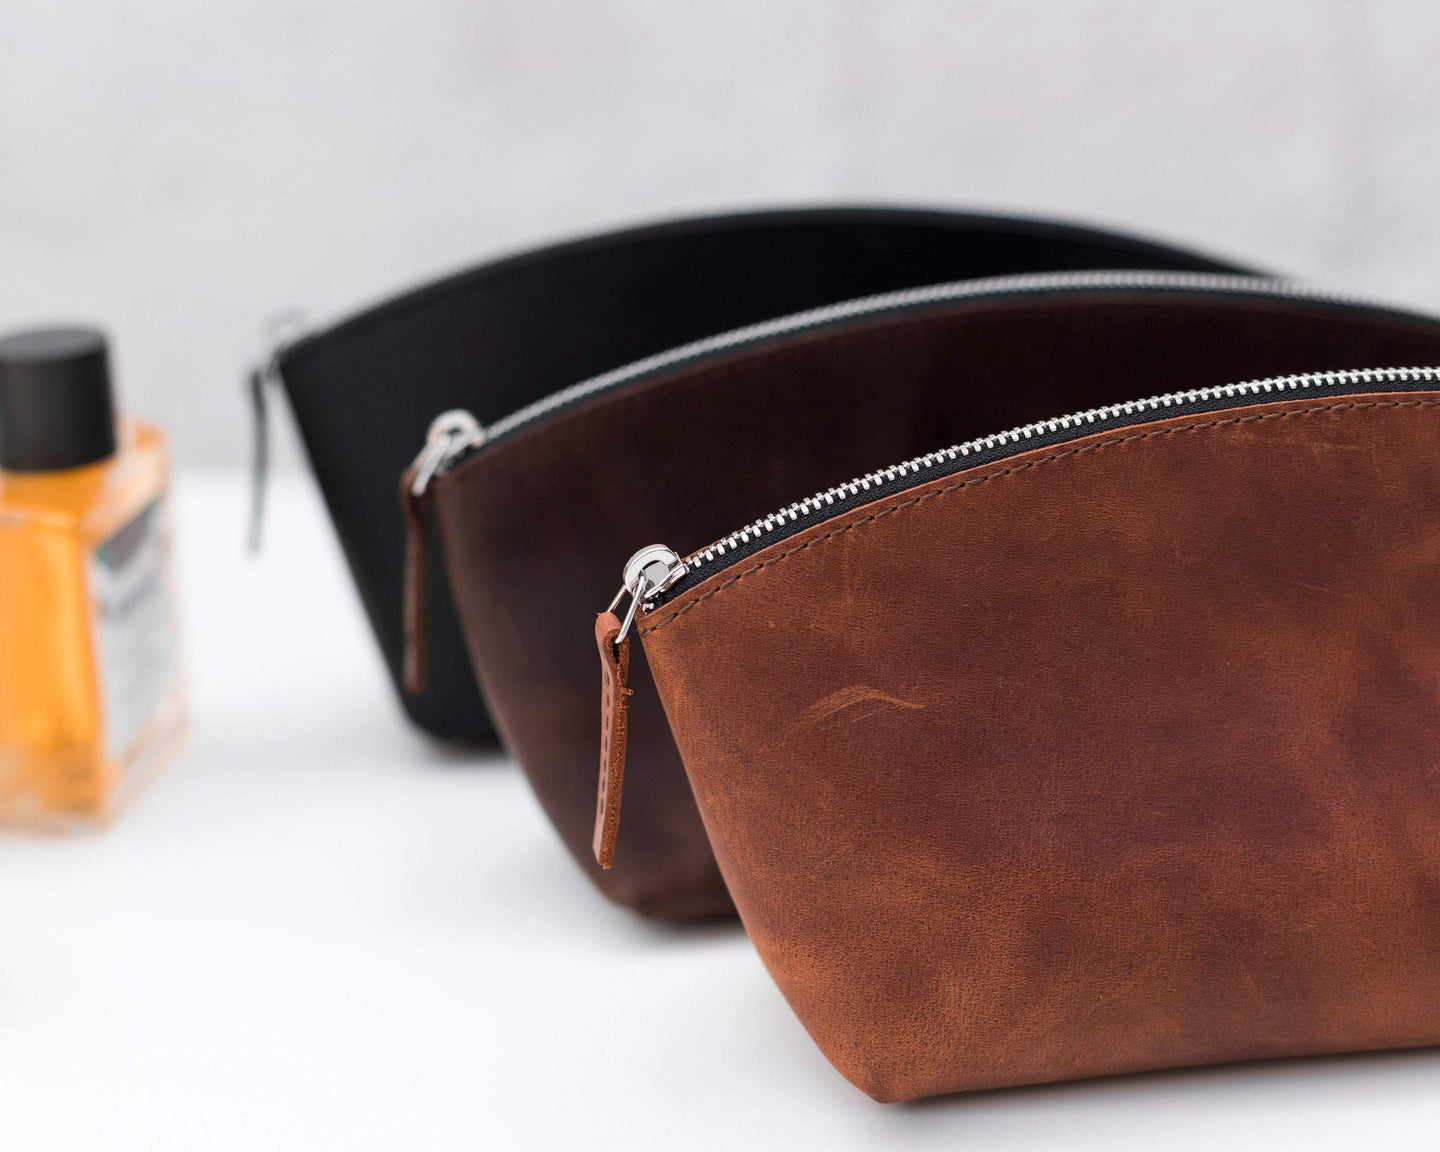 Leather goods | TheHrdwood